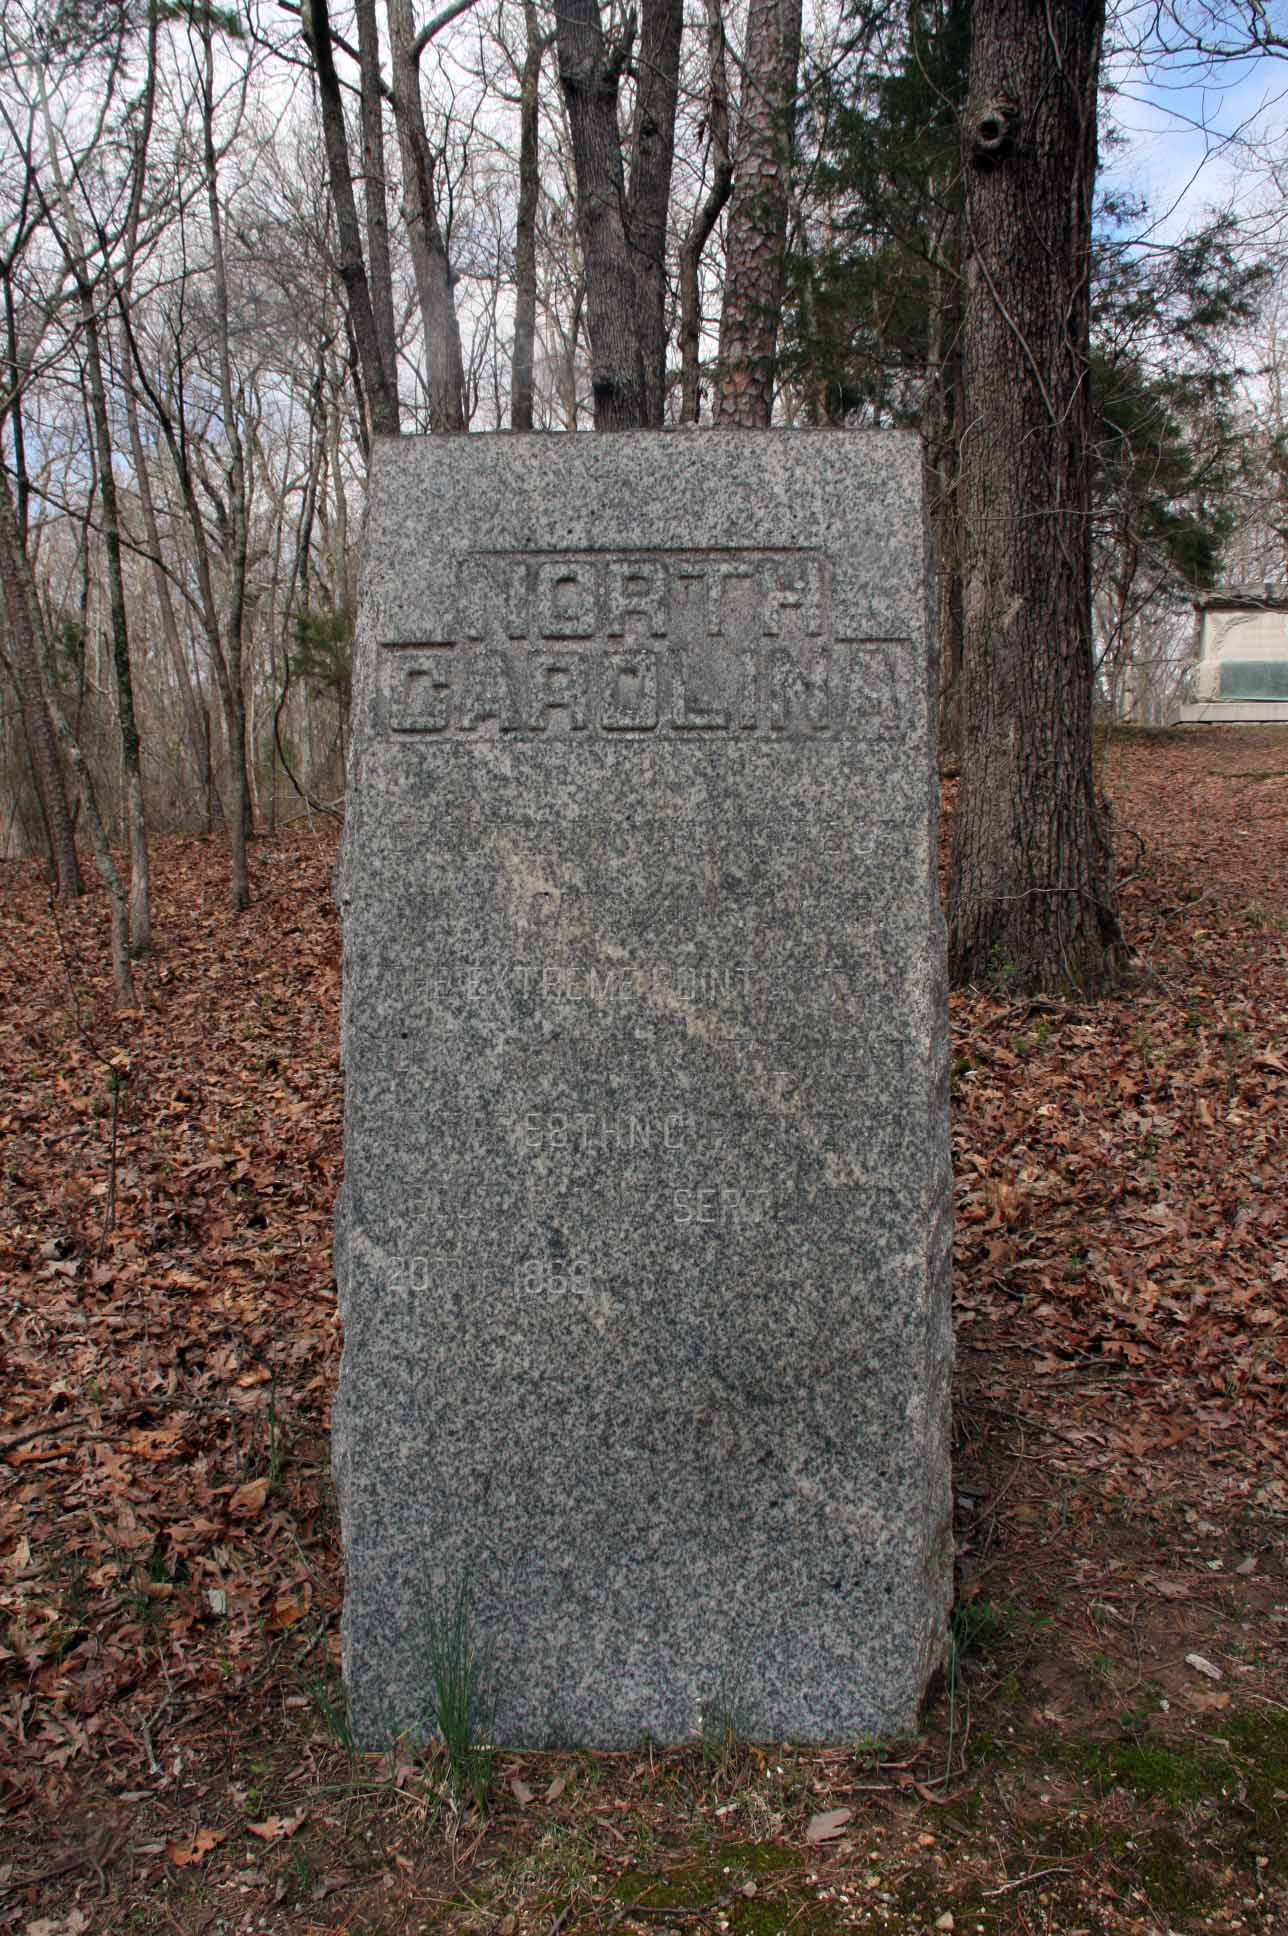 58th North Carolina Infantry Regiment Marker, click photo to enlarge.